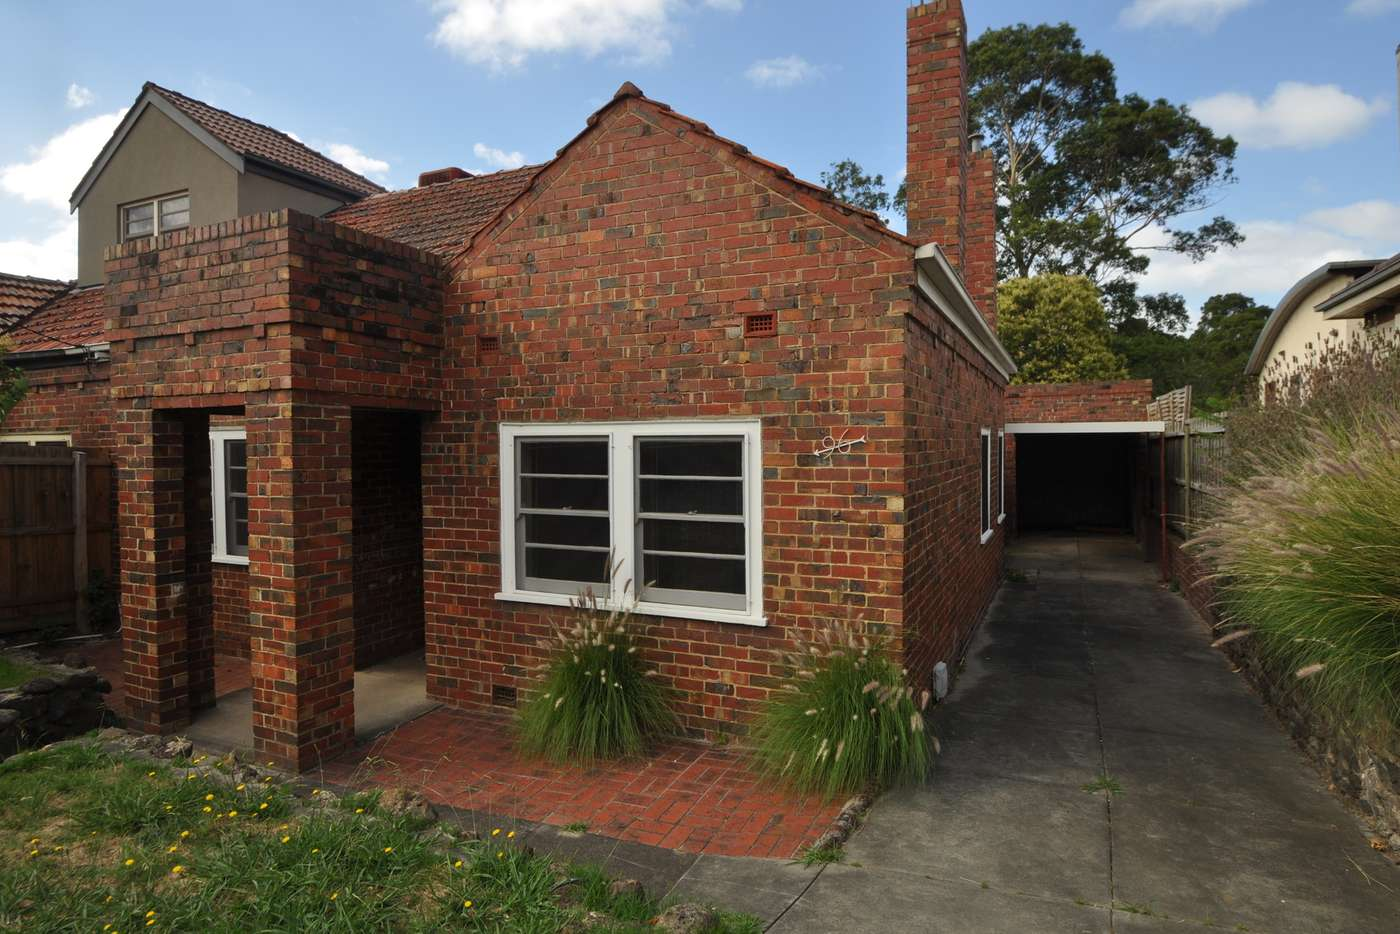 Main view of Homely house listing, 96 Valley Parade, Glen Iris VIC 3146